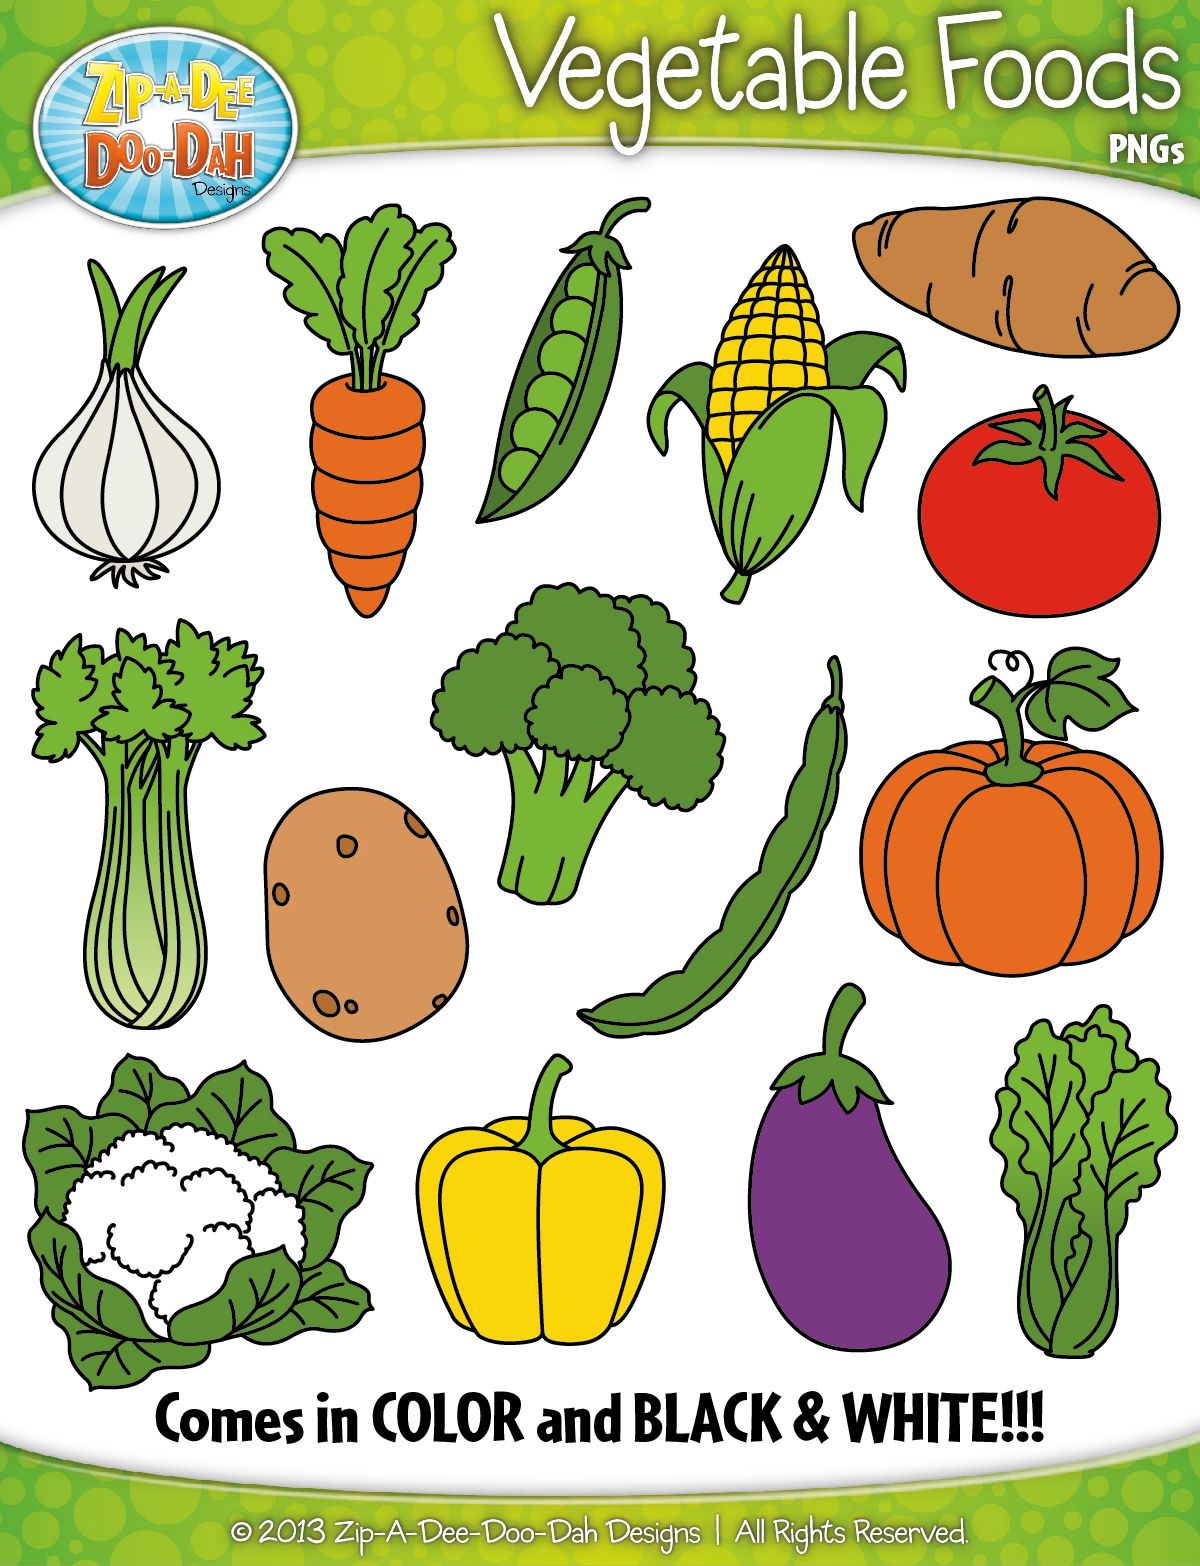 Vegetable Foods Clipart Zip A Dee Doo Dah Designs